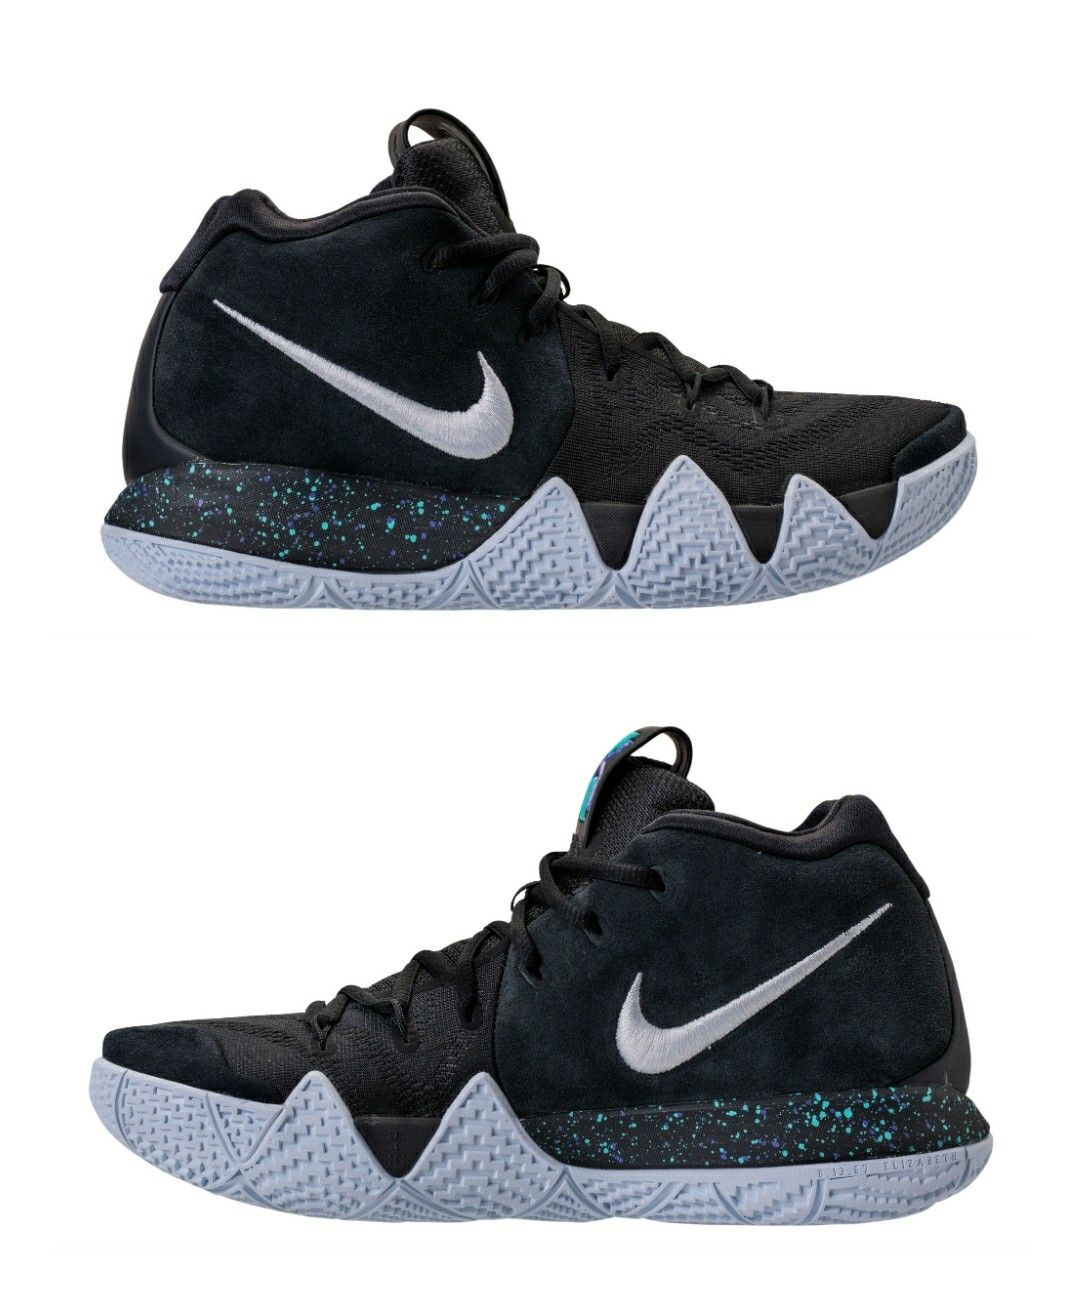 lower price with 0919f 86dda Nike Kyrie 4   Sneakers /Boots in 2019   Cool nike shoes ...